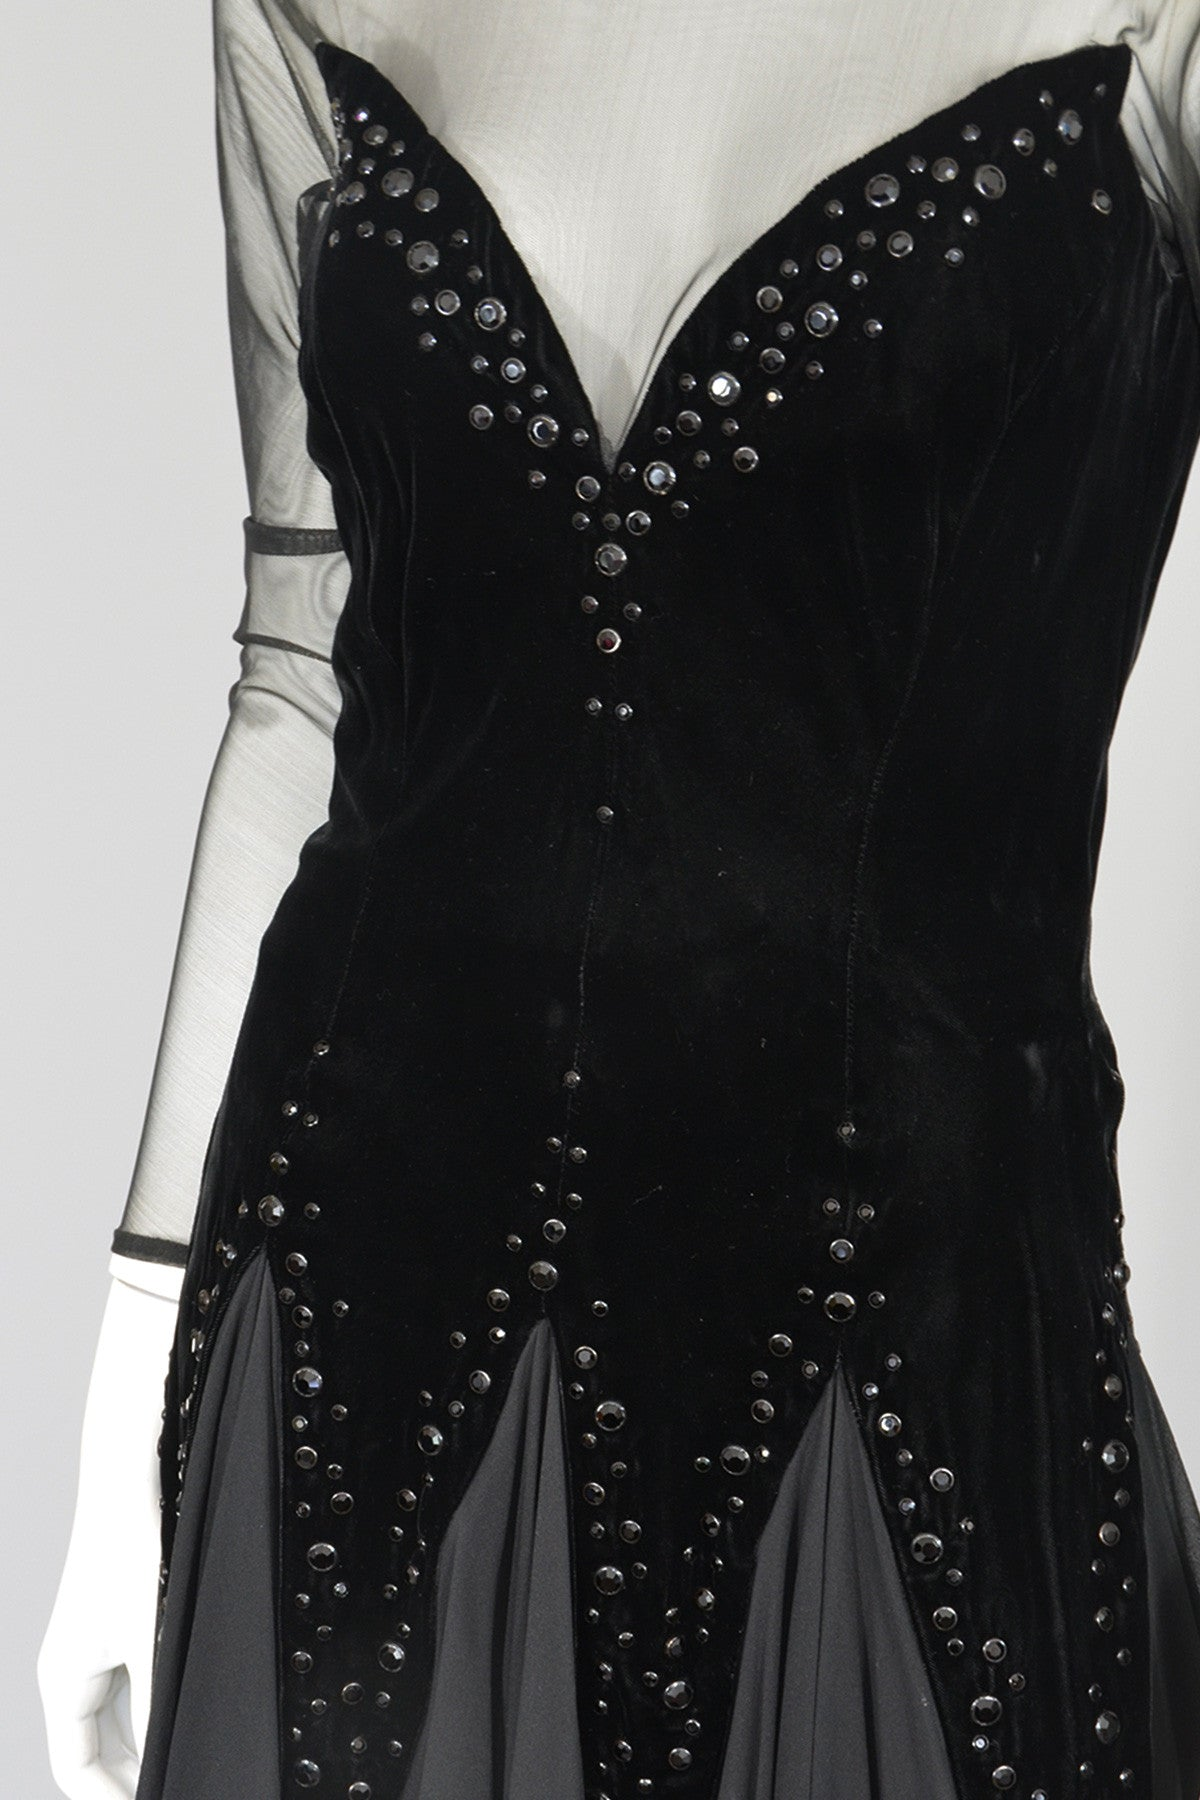 Lillie Ruben Black Velvet Studded Chiffon Party Dress